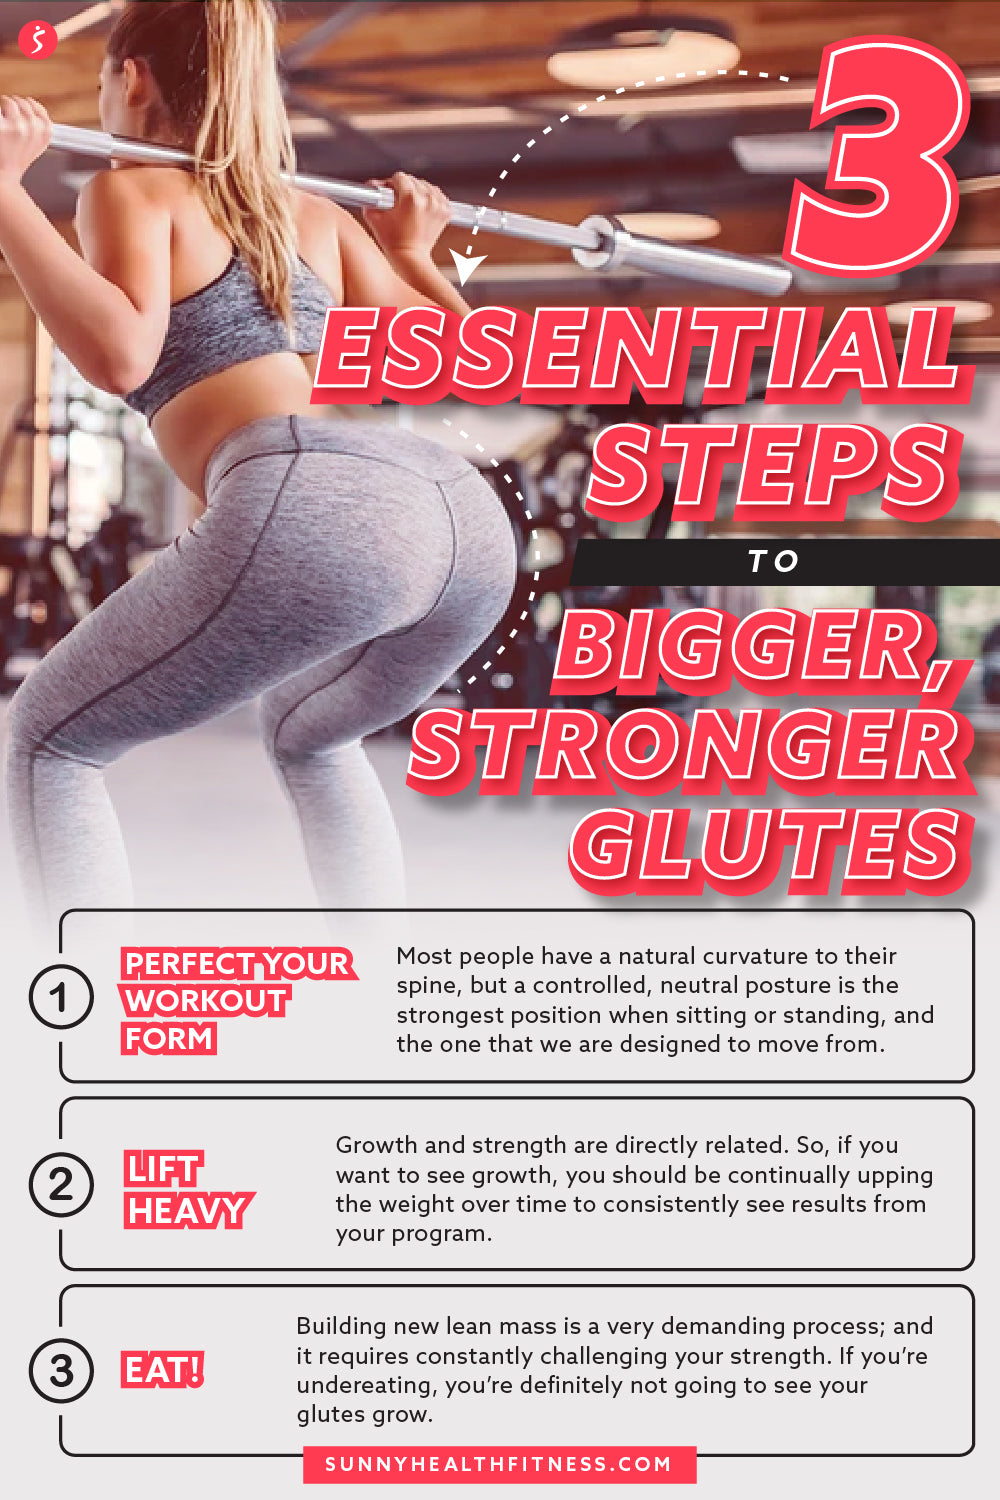 3 Essential Steps to Bigger, Stronger Glutes Infographic